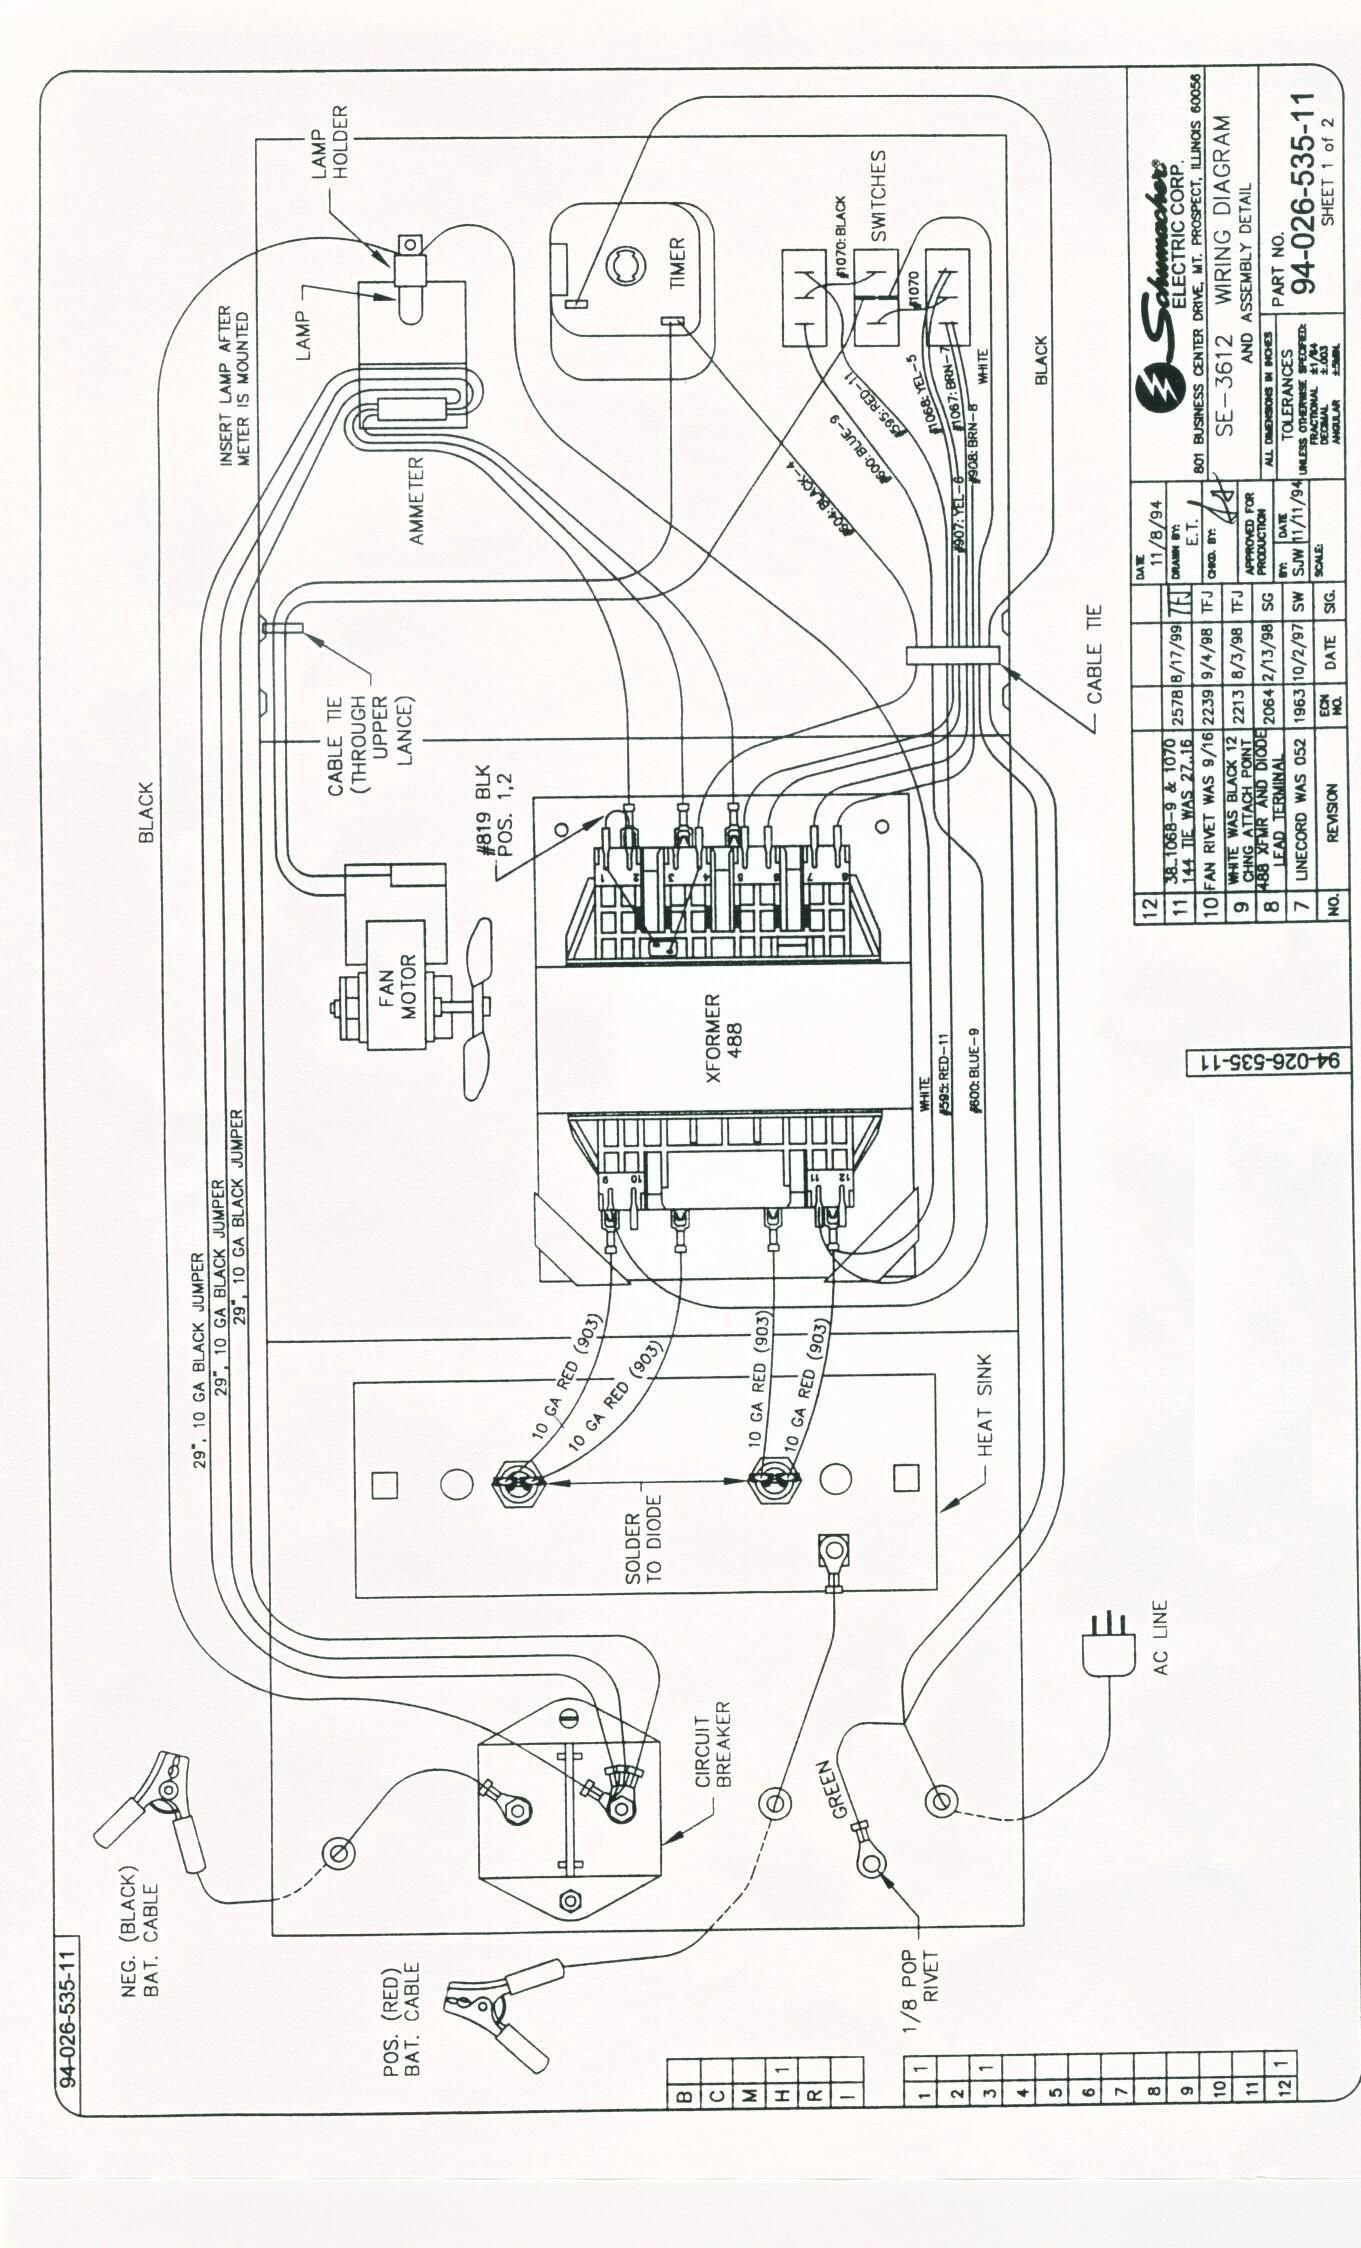 small resolution of schumacher battery charger wiring schematic 0 car battery motors wiring diagram iphone 6 schematics schumacher battery charger wiring